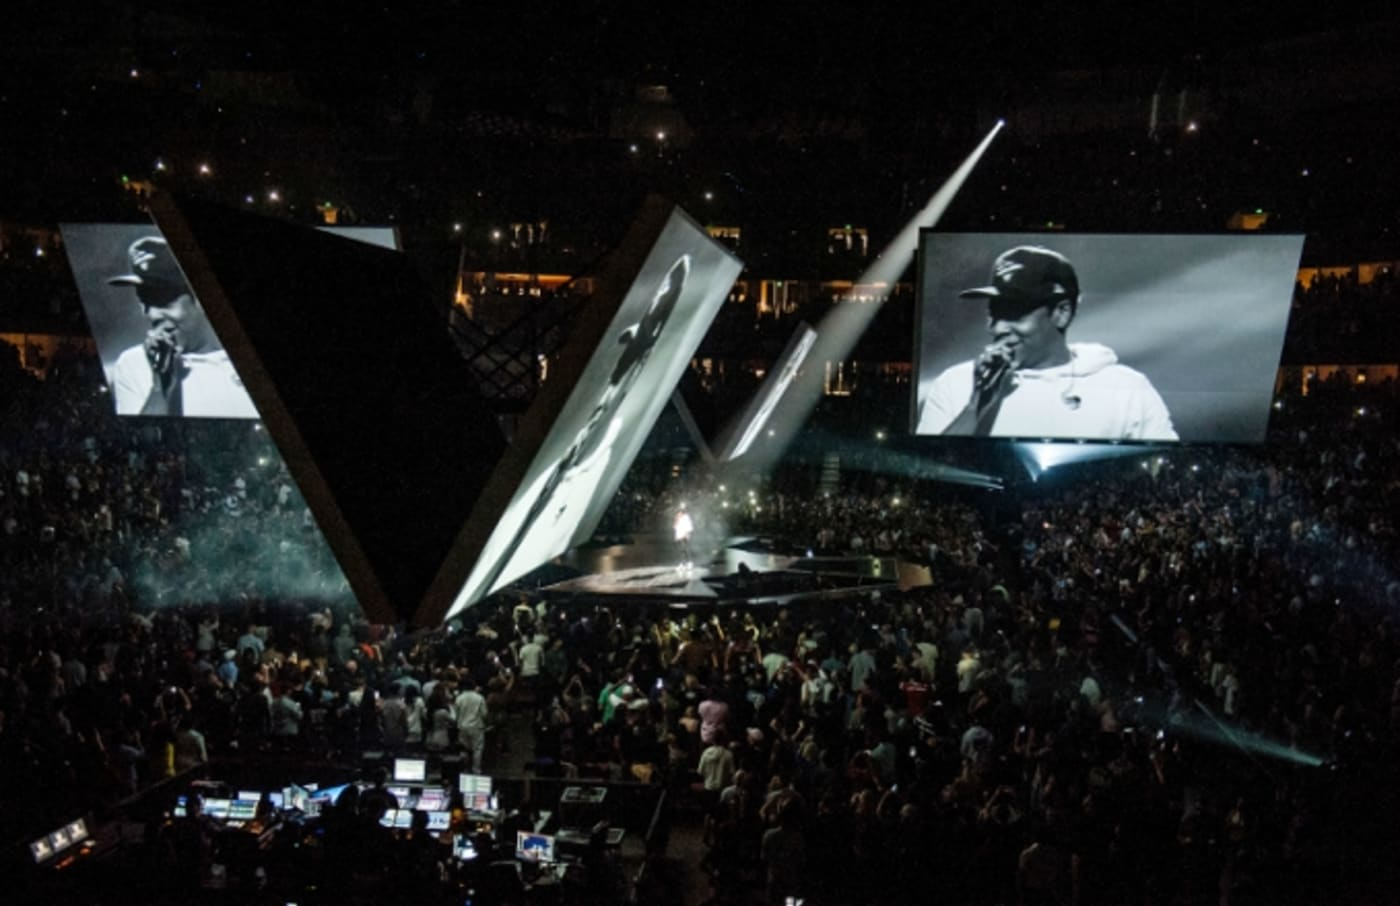 Jay Z 4:44 tour stop in Anaheim, California.